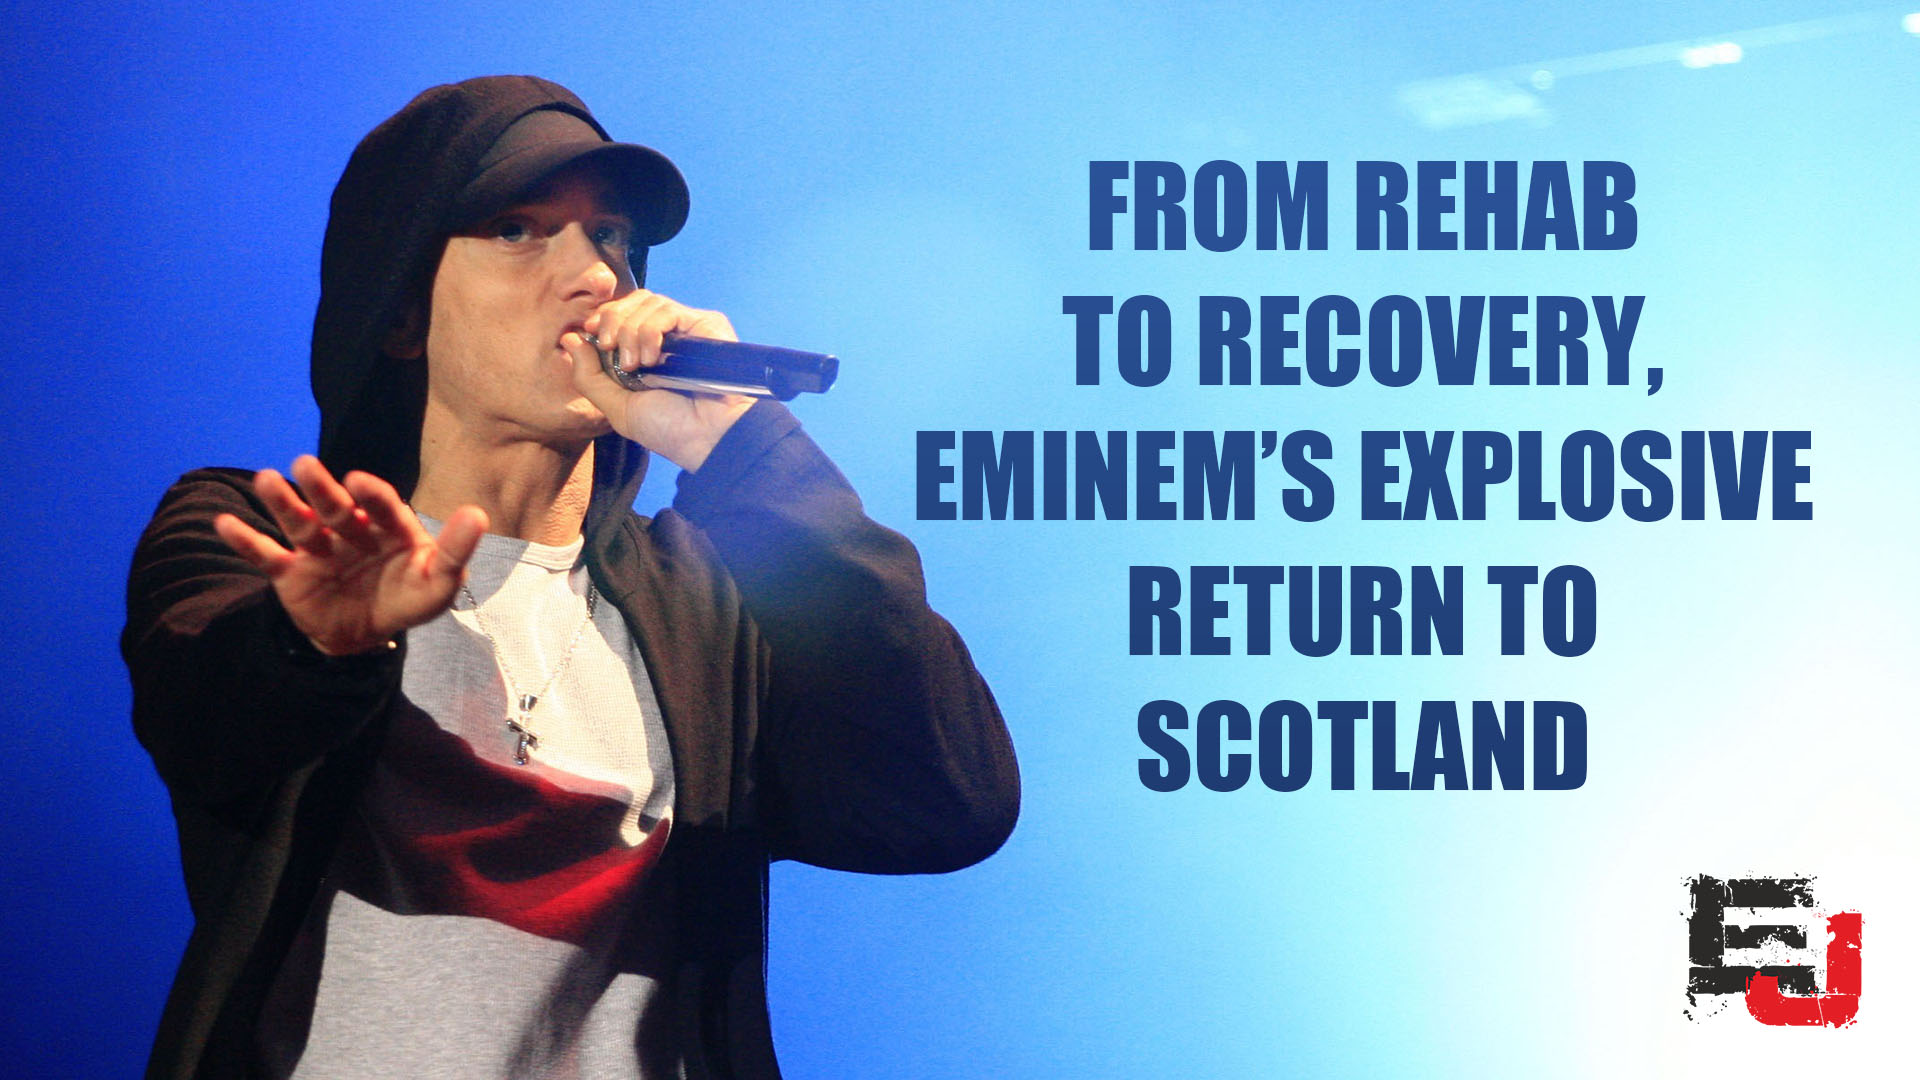 From Rehab To Recovery, Eminem's Explosive Return To Scotland